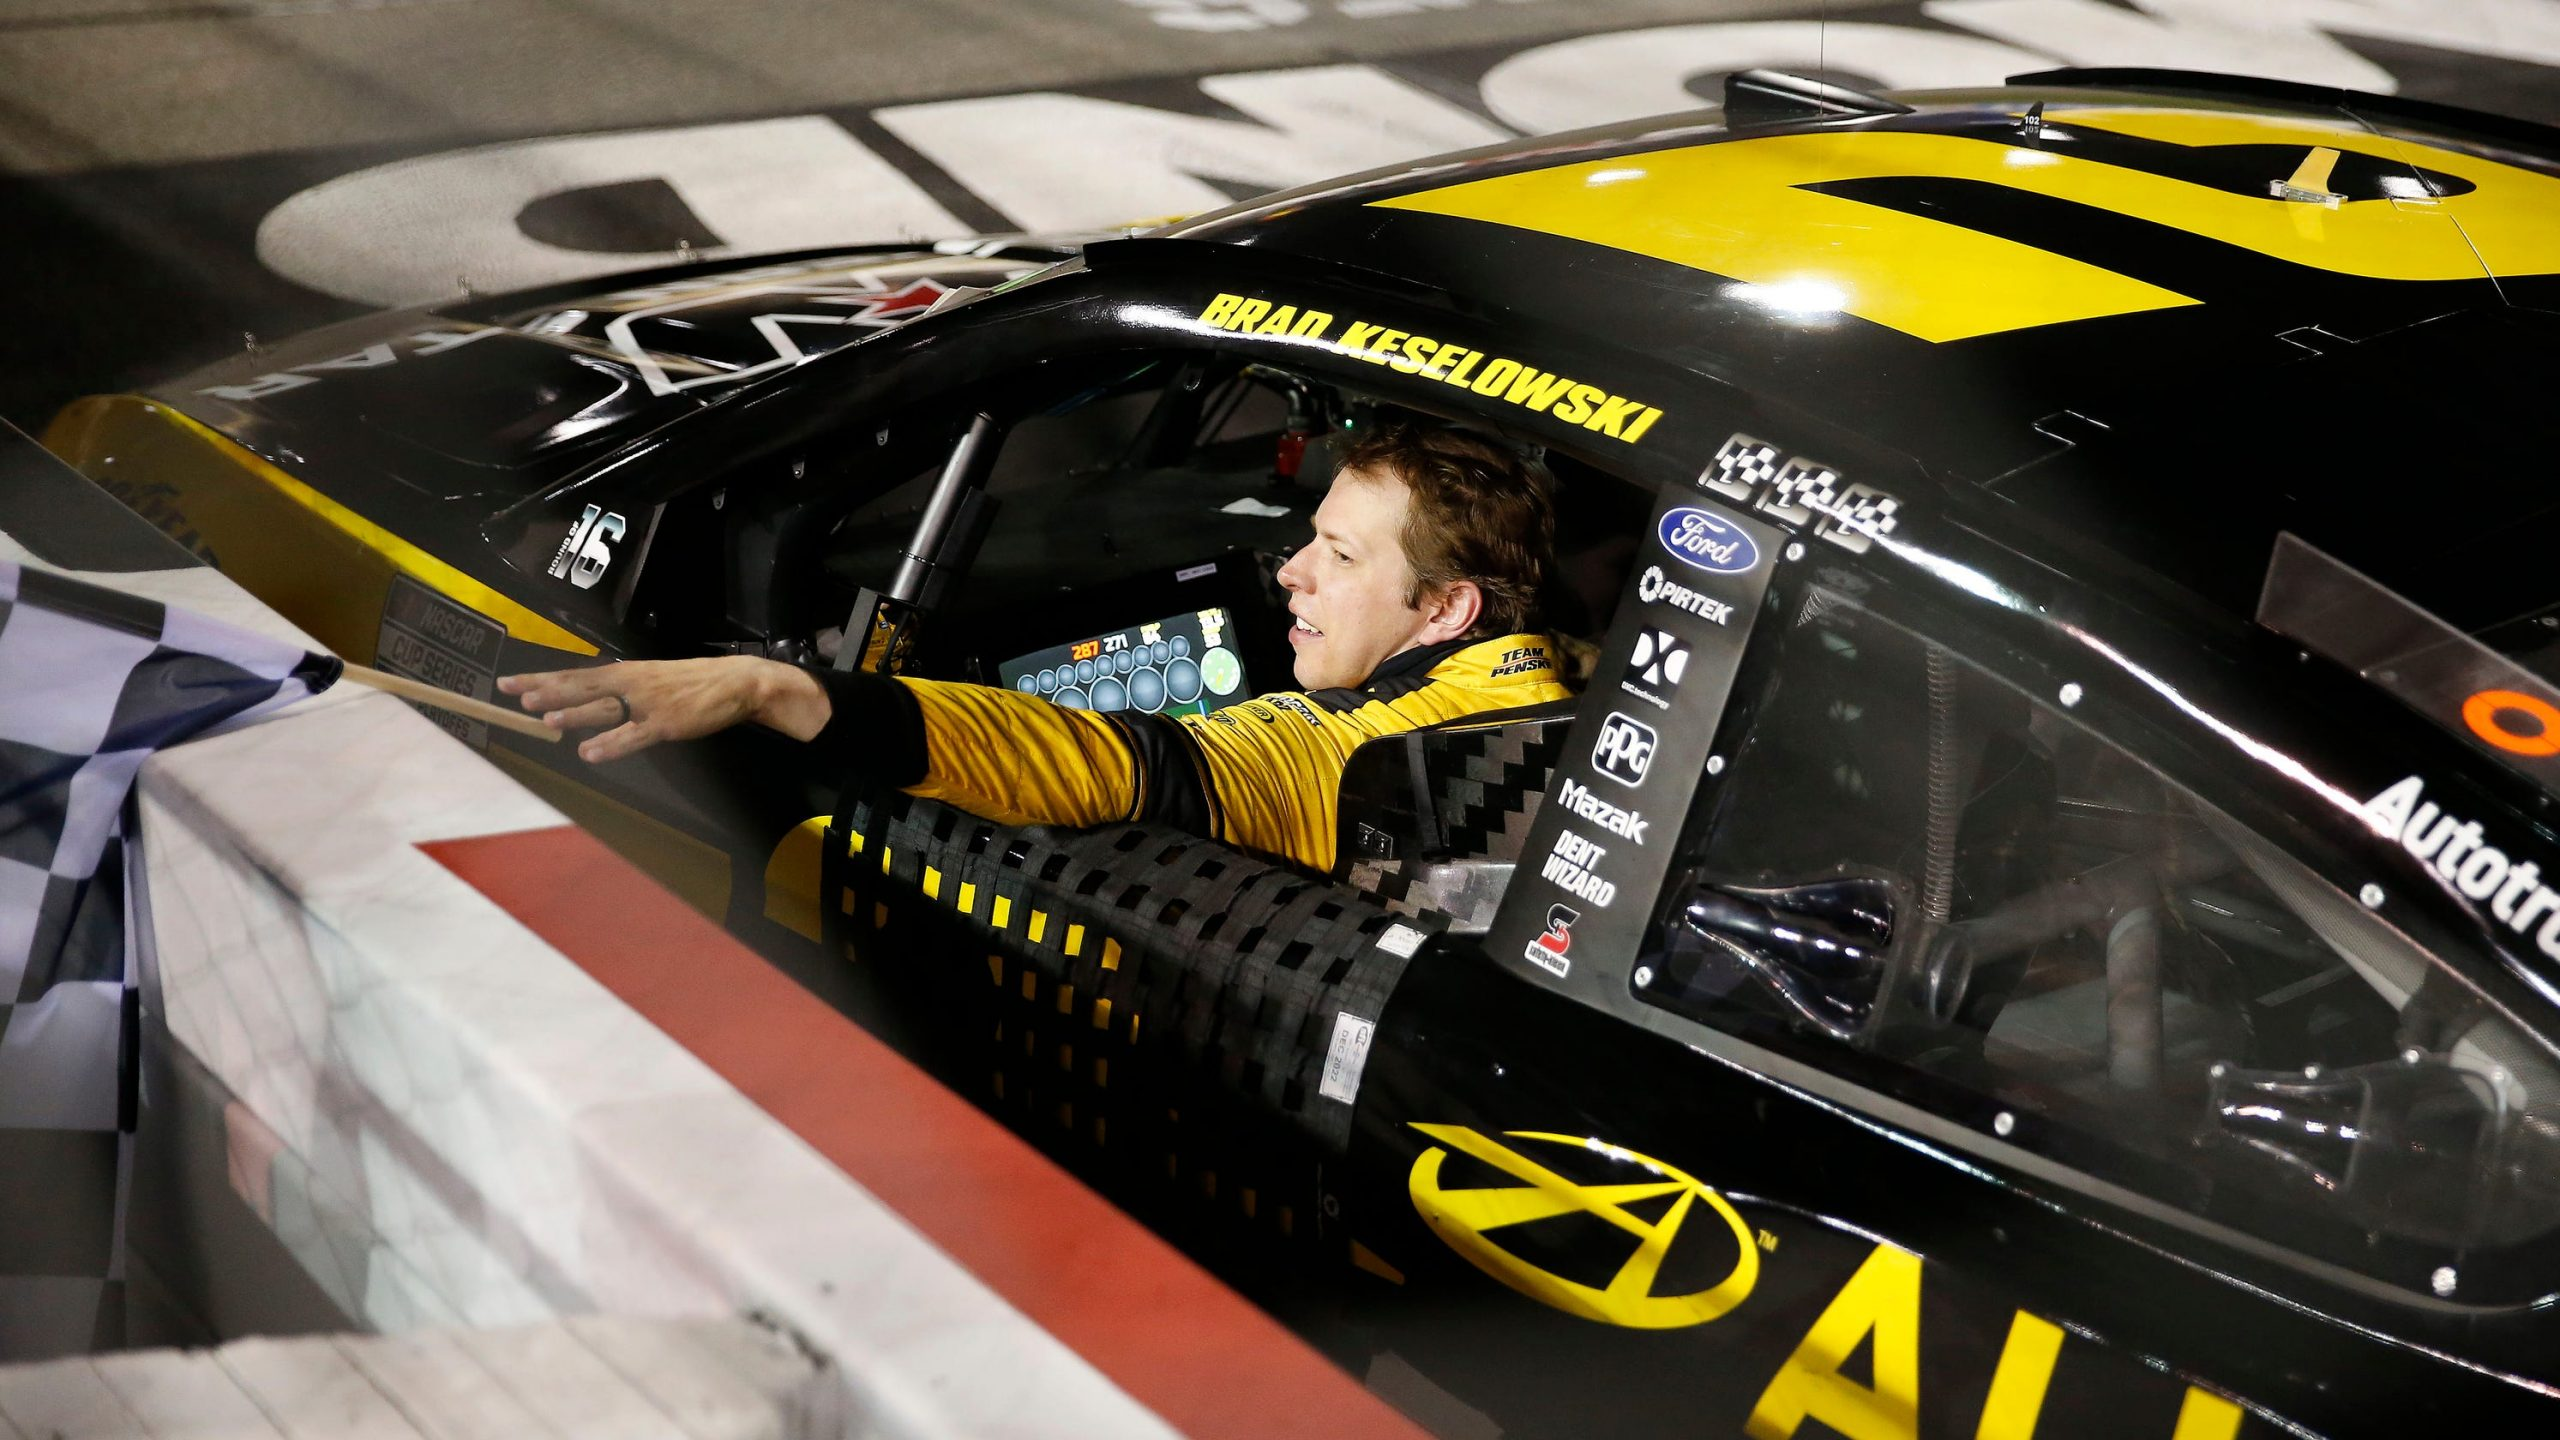 NASCAR at Richmond: Start time, lineup, TV schedule and more for Toyota Owners 400